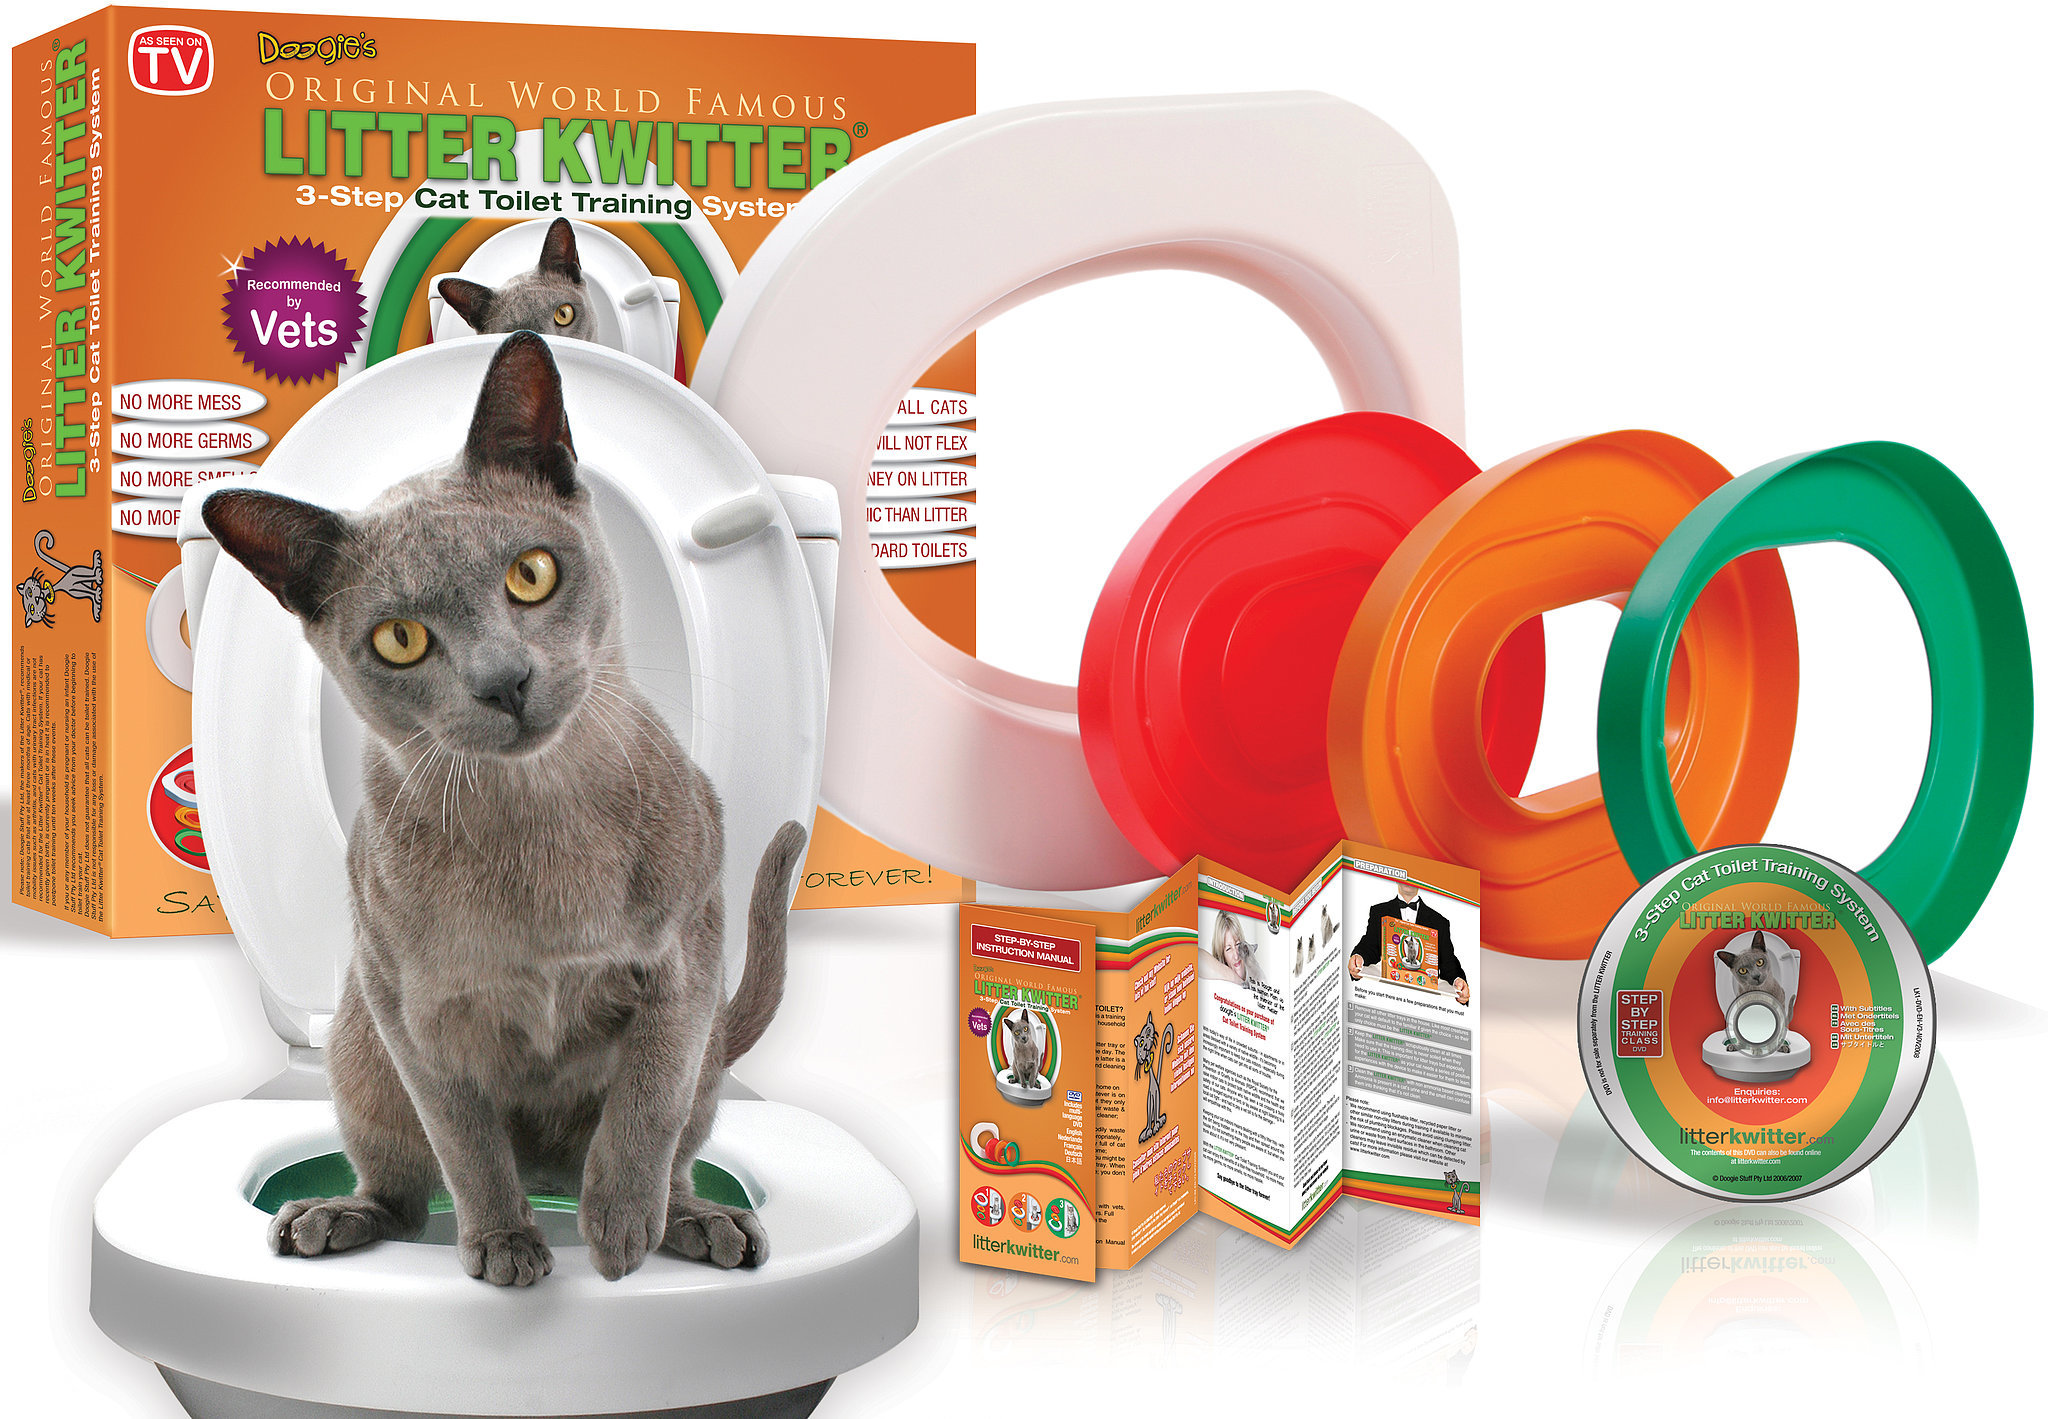 Litter Kwitter Cat Toilet Training Tool Tips Popsugar Pets